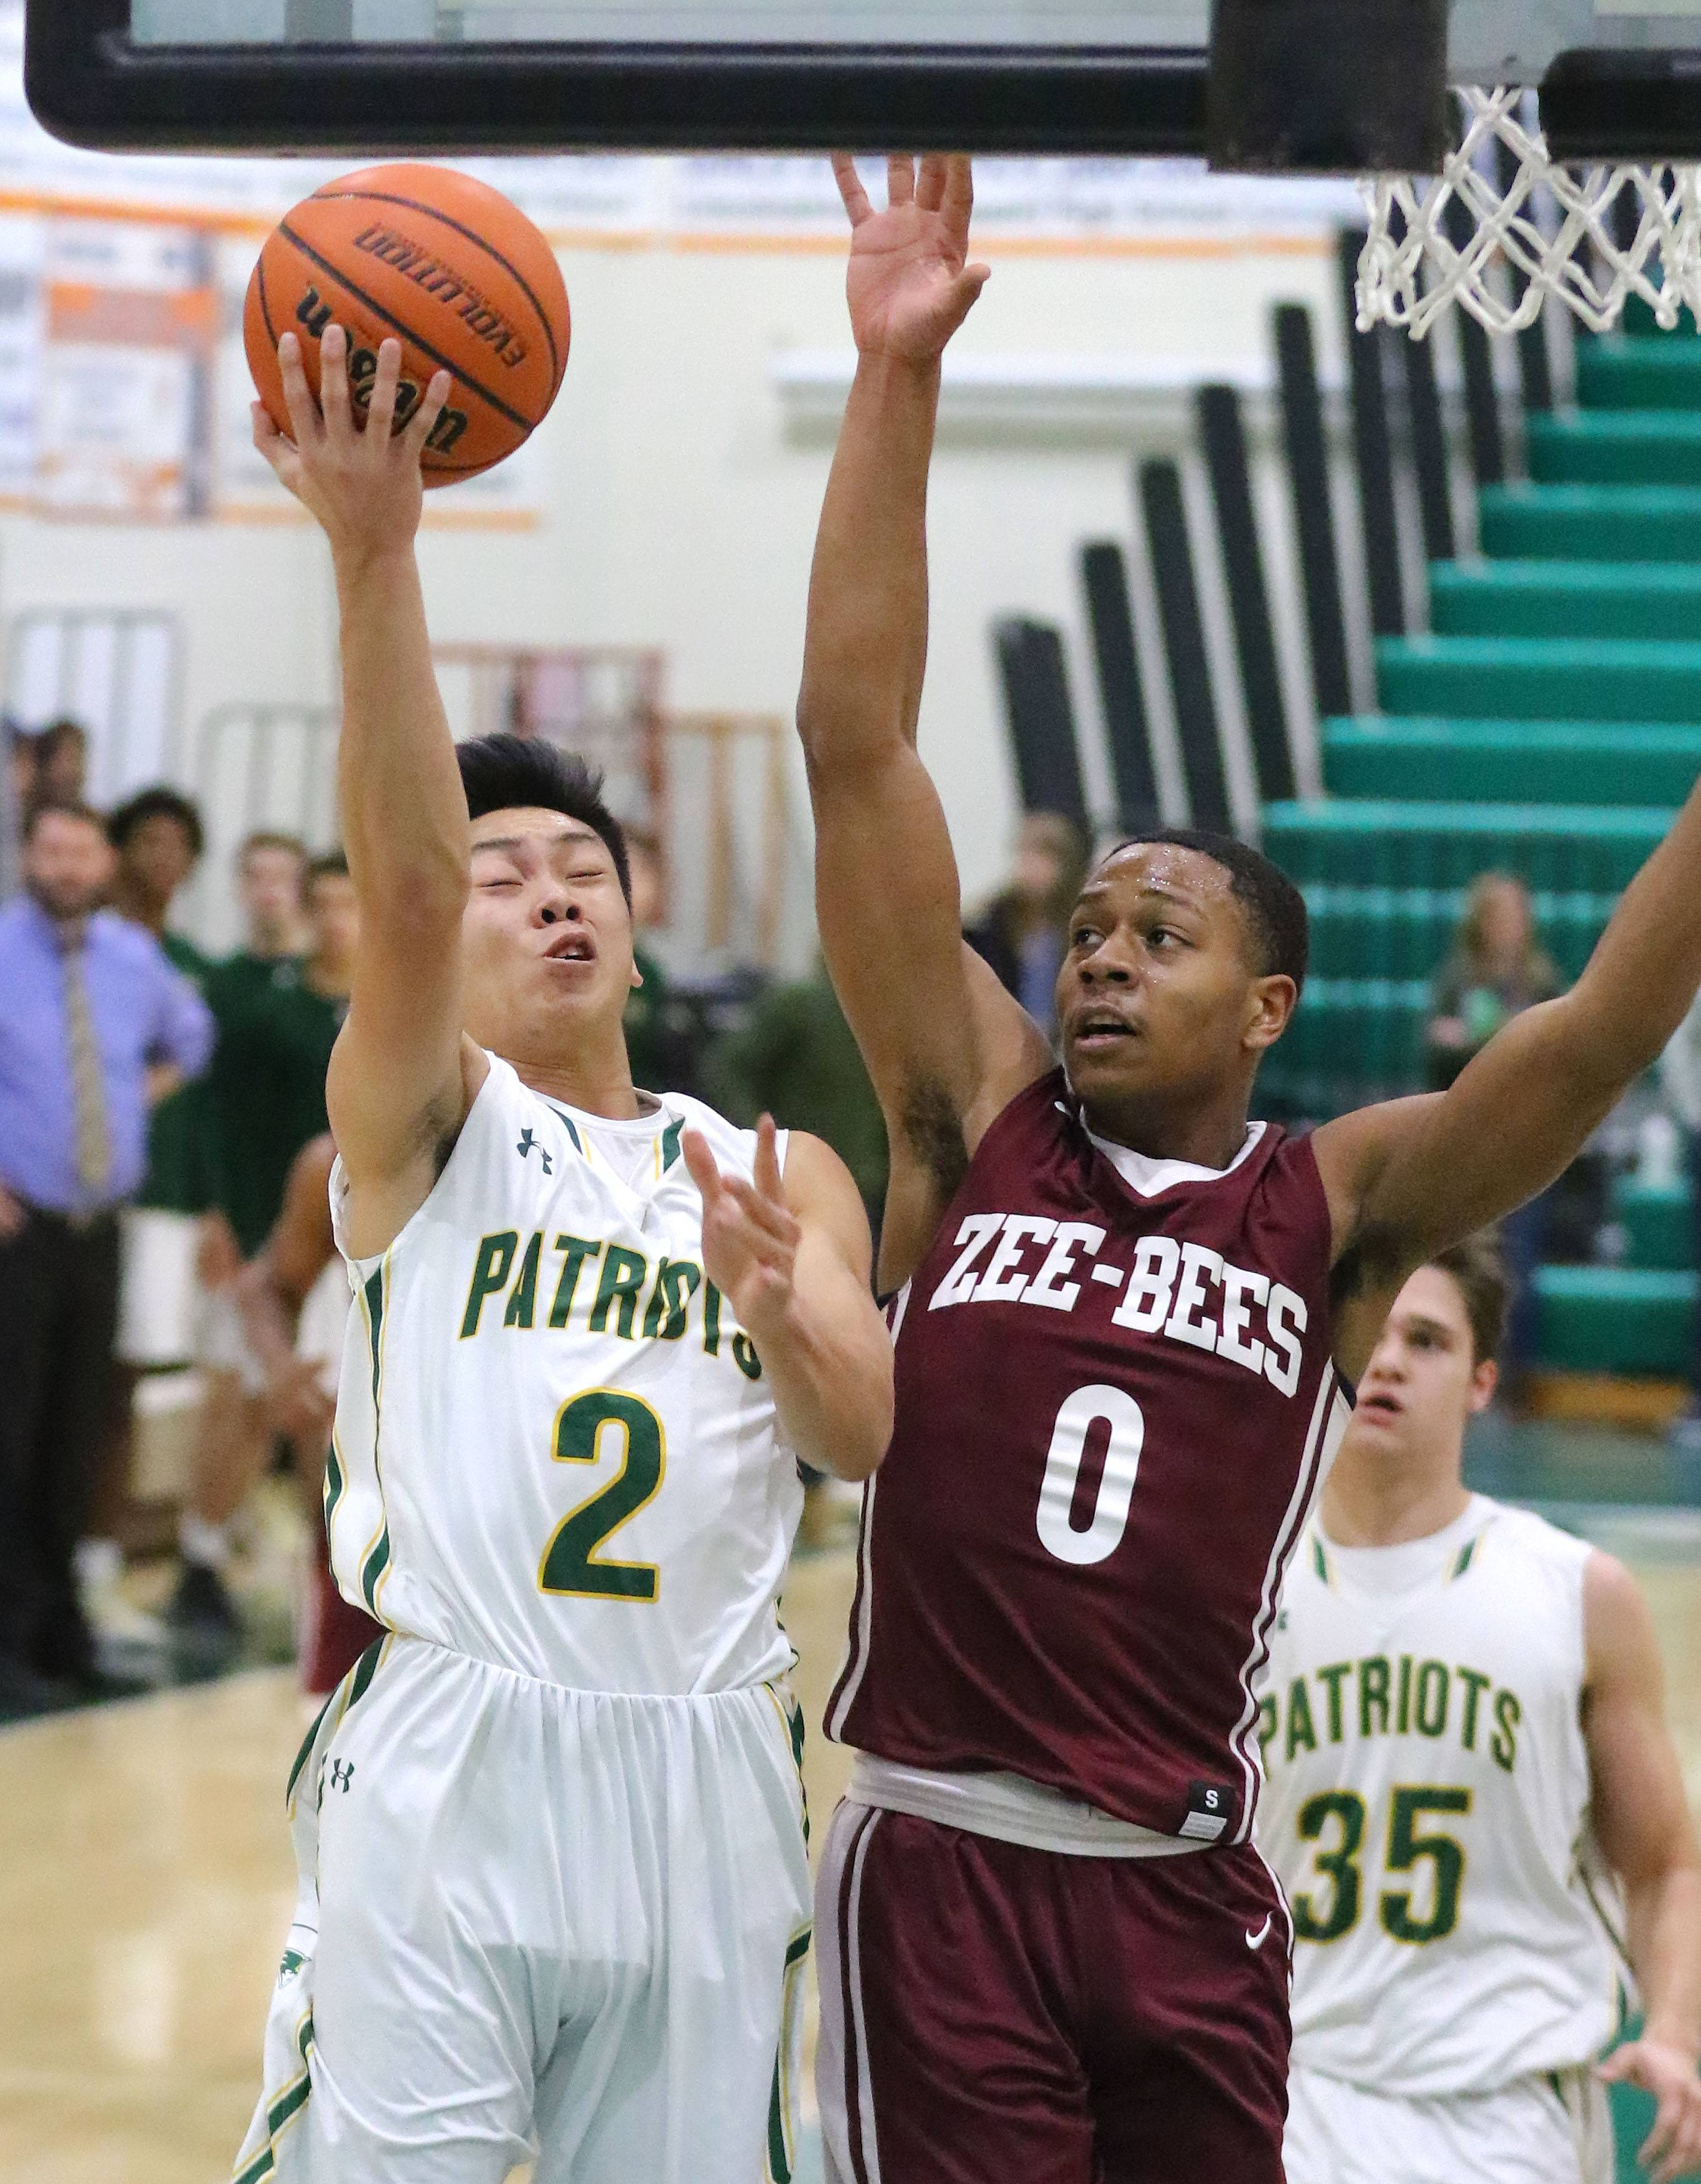 Stevenson's Luke Chieng (2) drives on Zion-Benton's Quentin Williams during their game Friday in Lincolnshire.